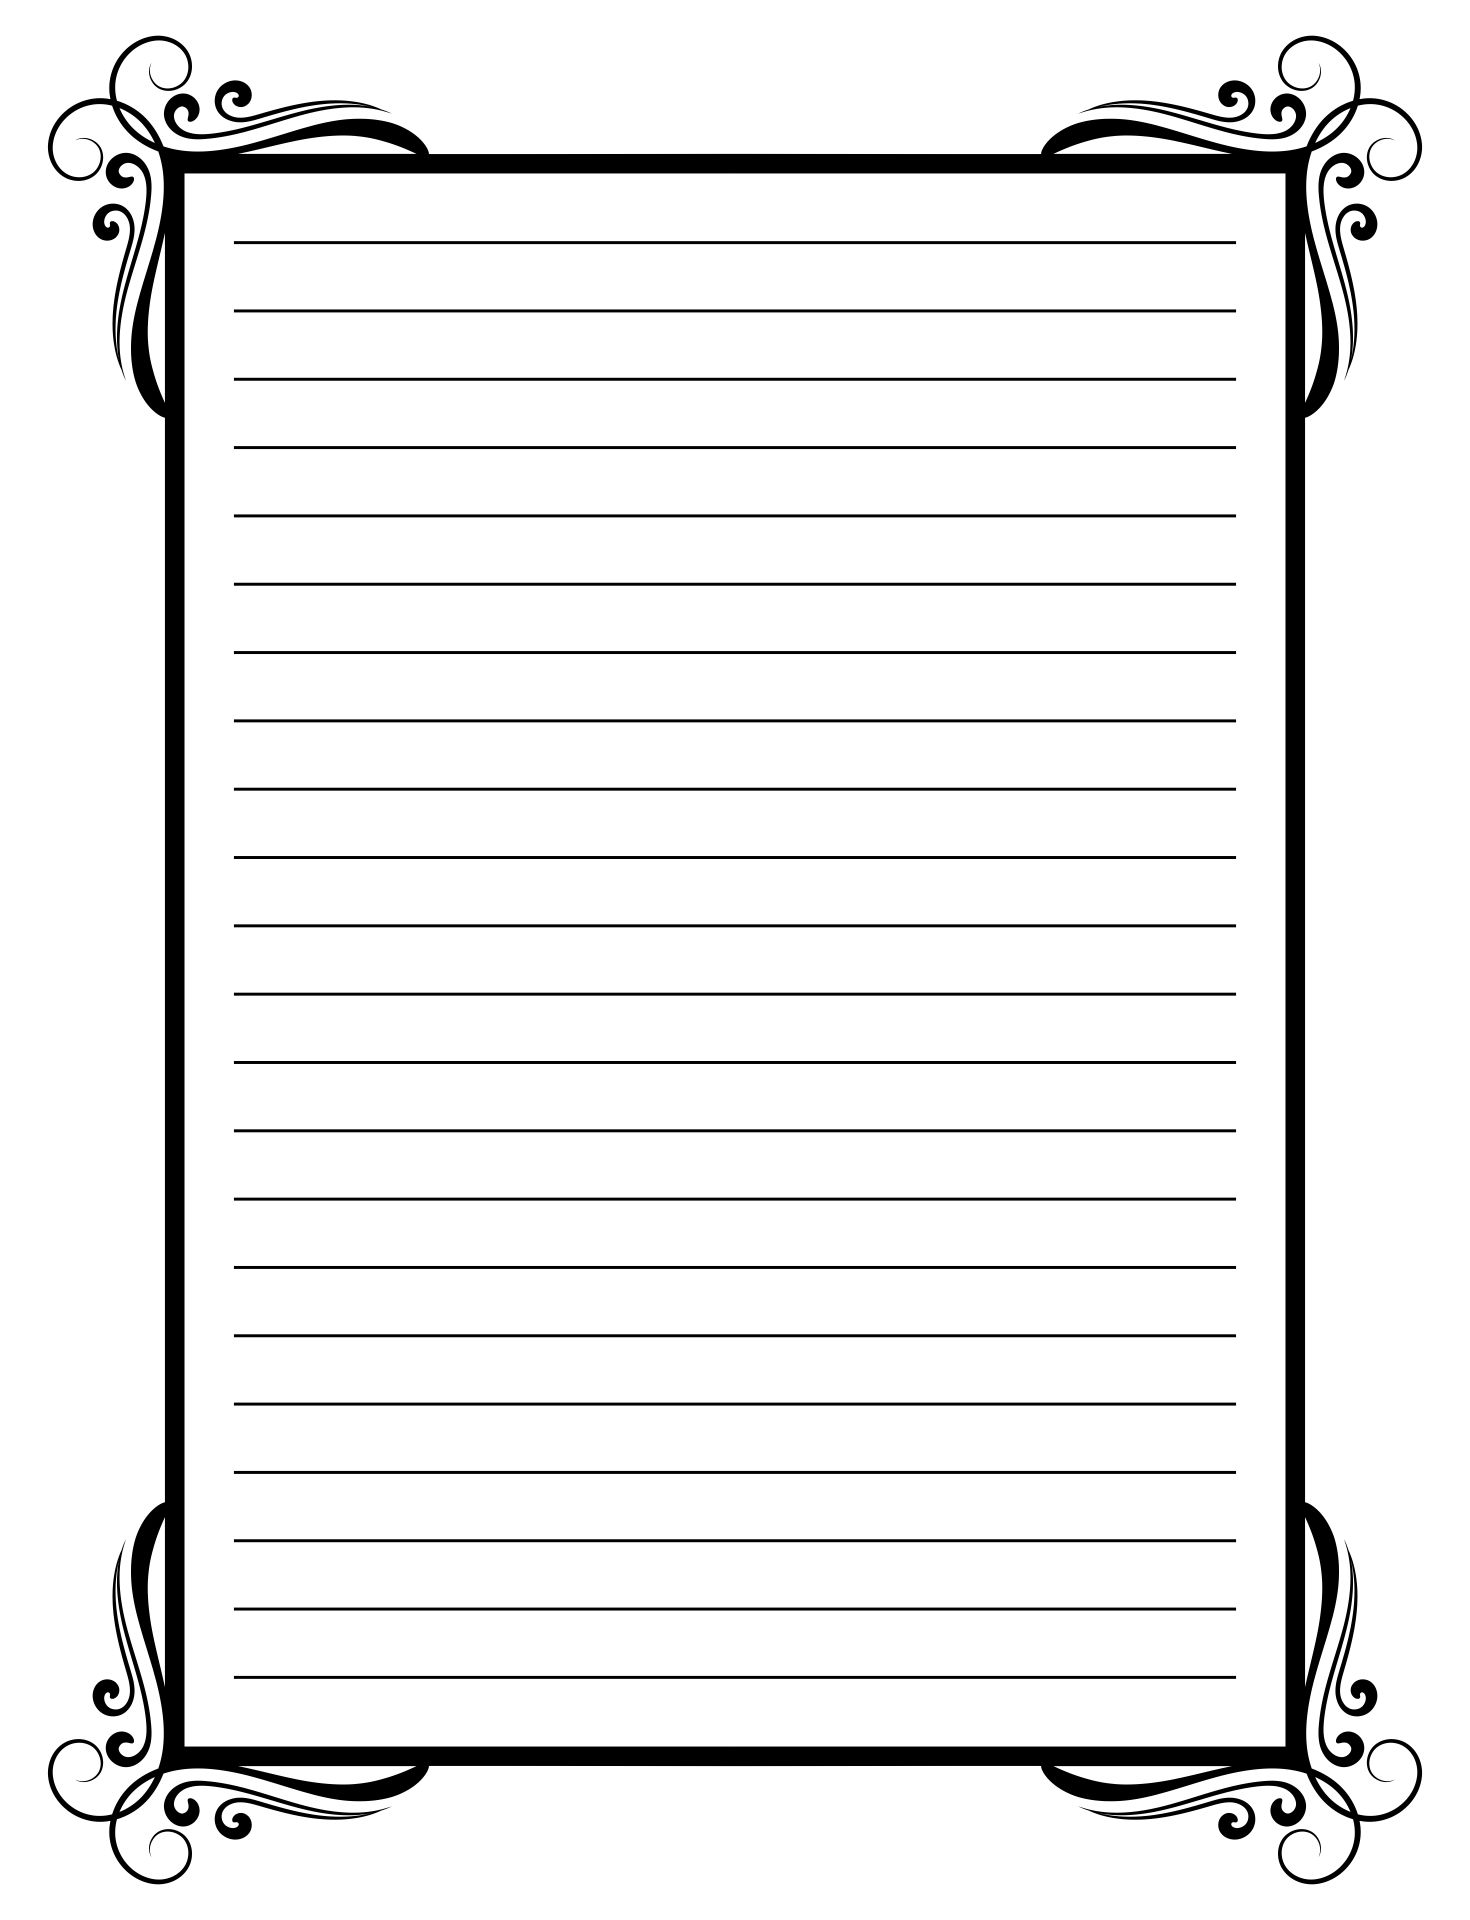 Black and White Printable Lined Stationery Paper